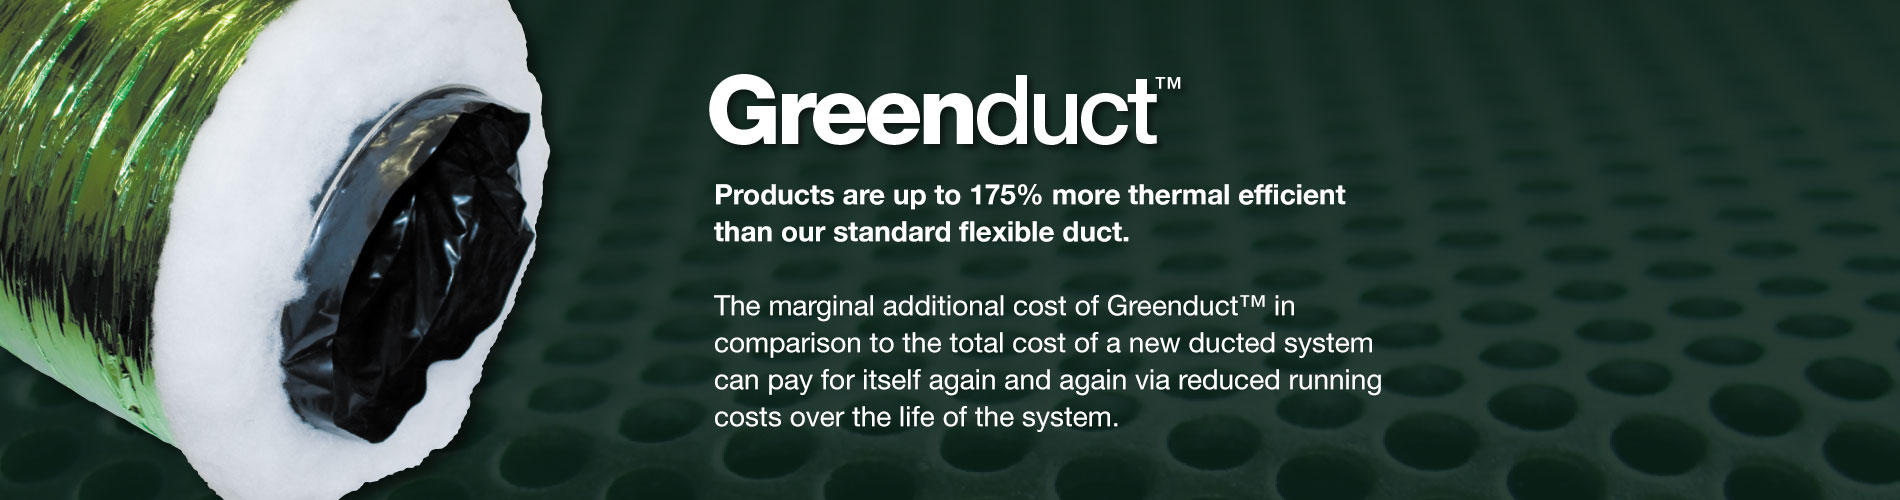 Greenduct